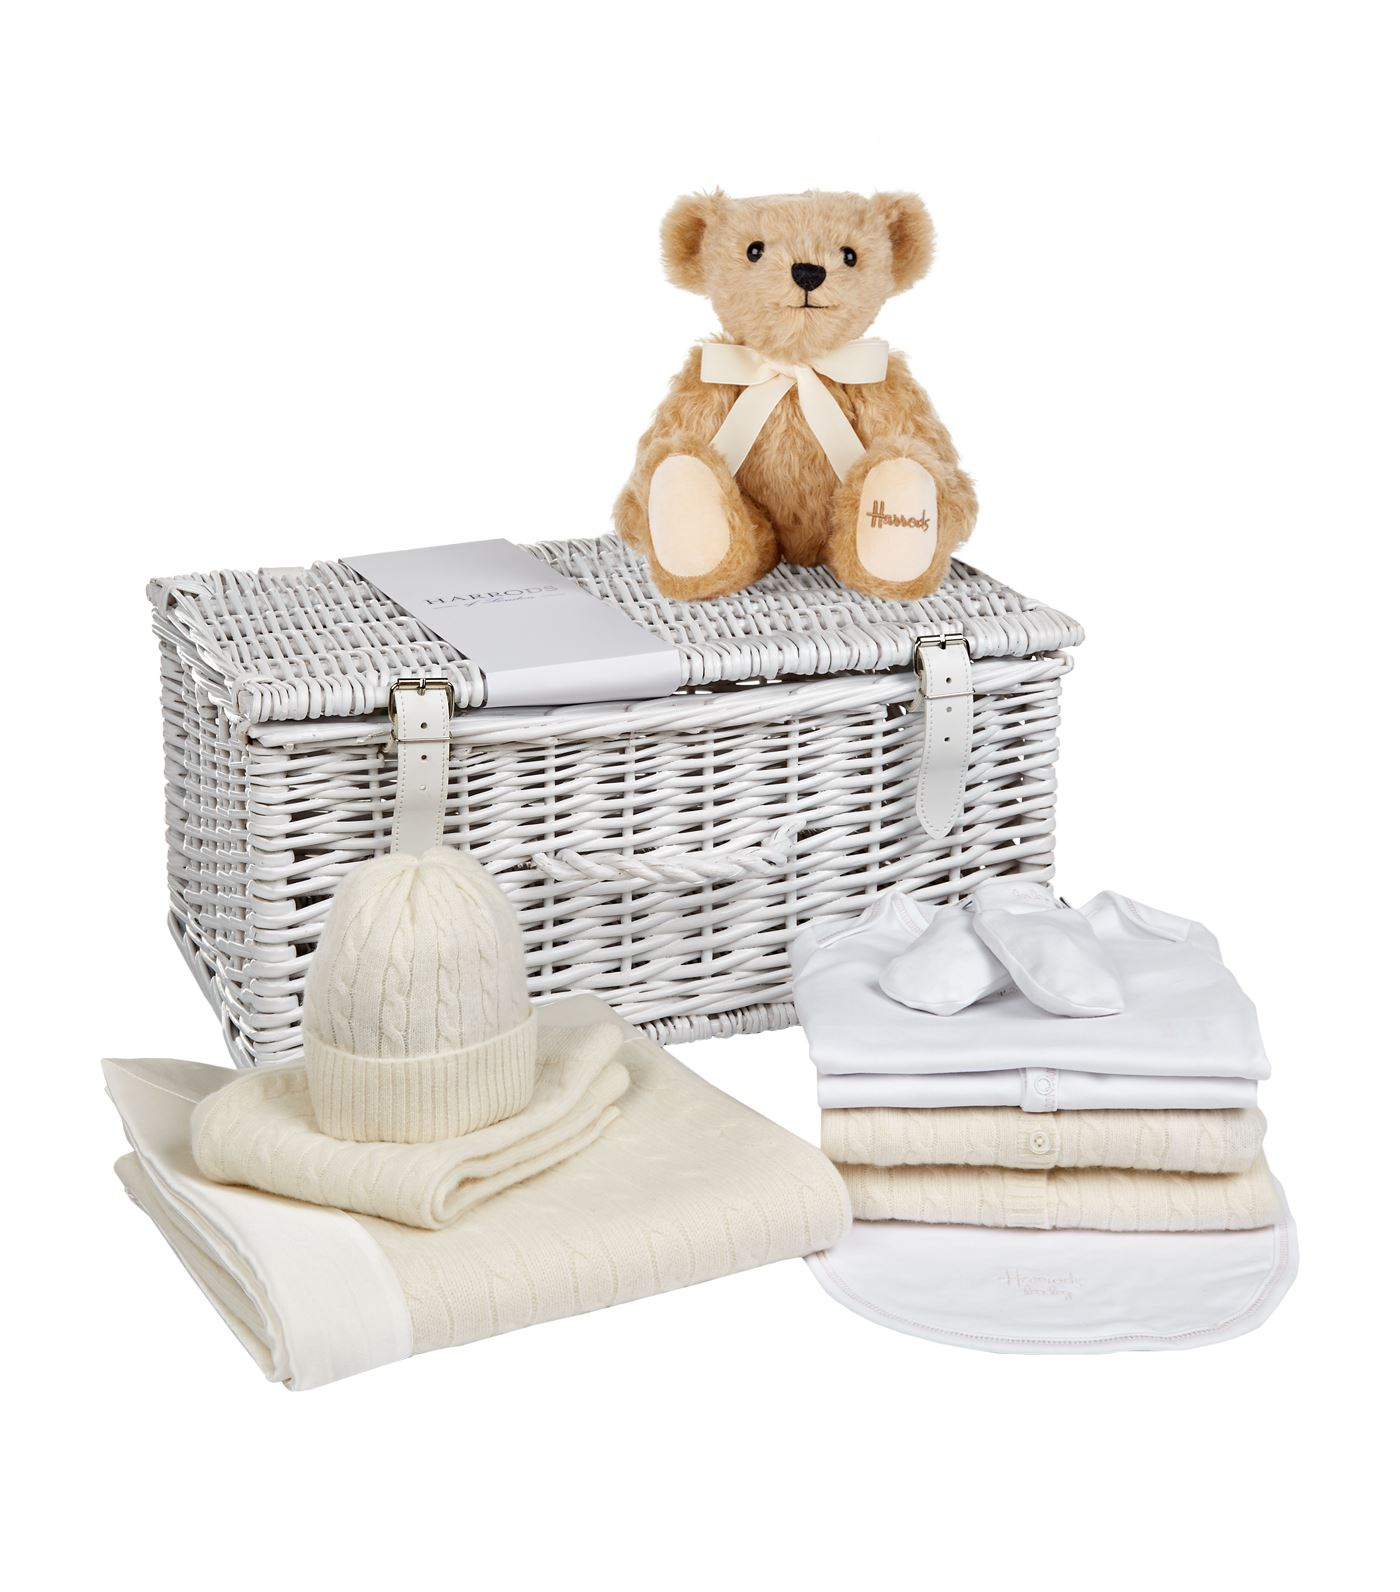 Gift Ideas for a Royal Baby - English Trousseau Goodie Two Shoes Hamper.jpg